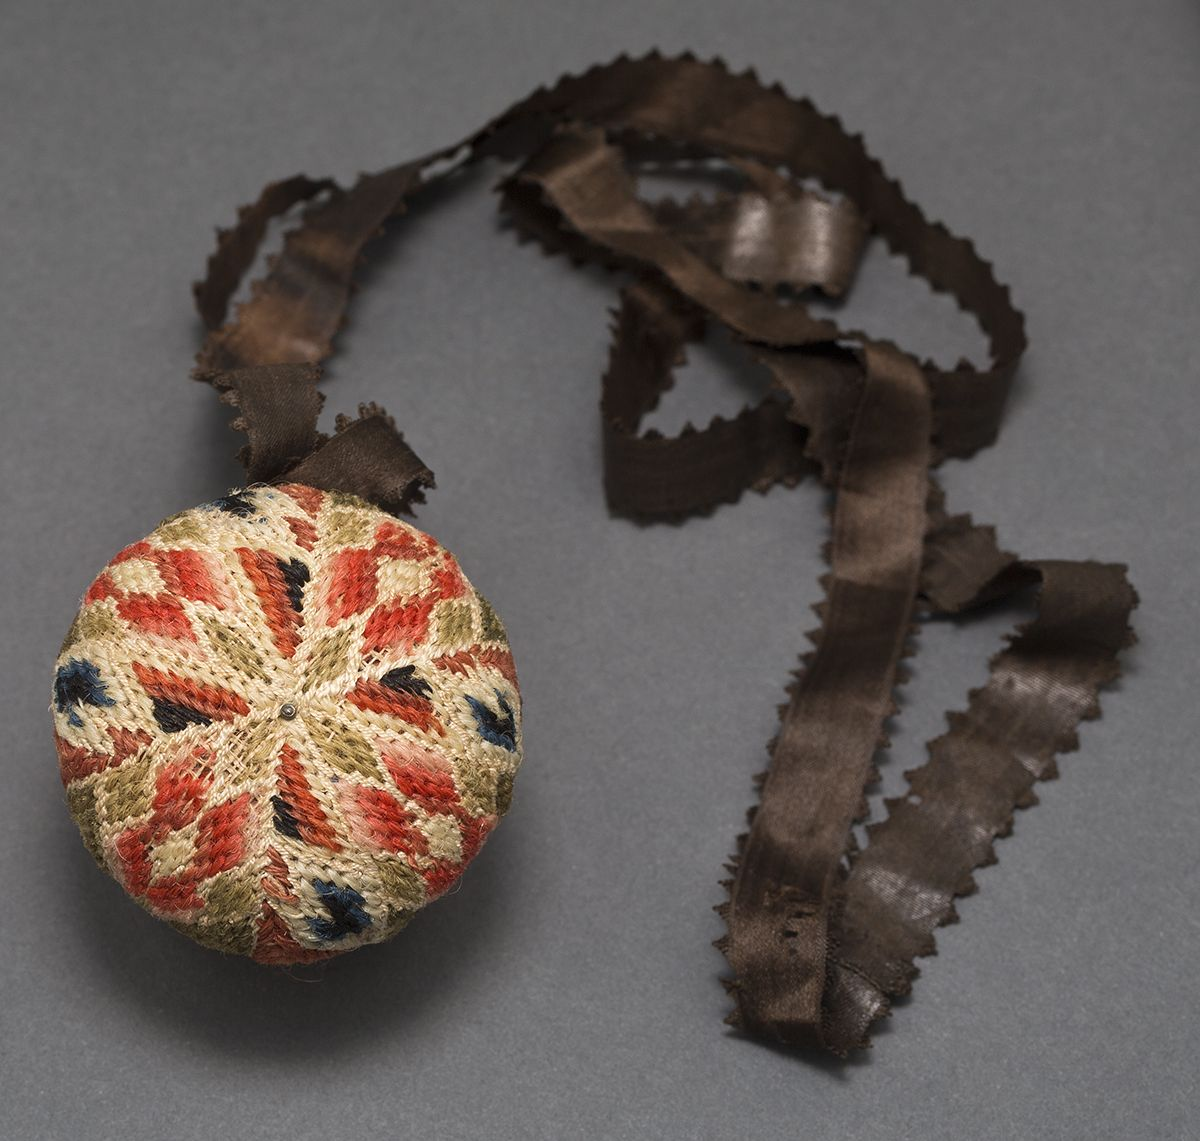 Pinball, Winterthur, Chester Pennsylvania. Linen, silk, wool, 2 inches (l) x 1.87 inches diameter, accession number 1976.0178